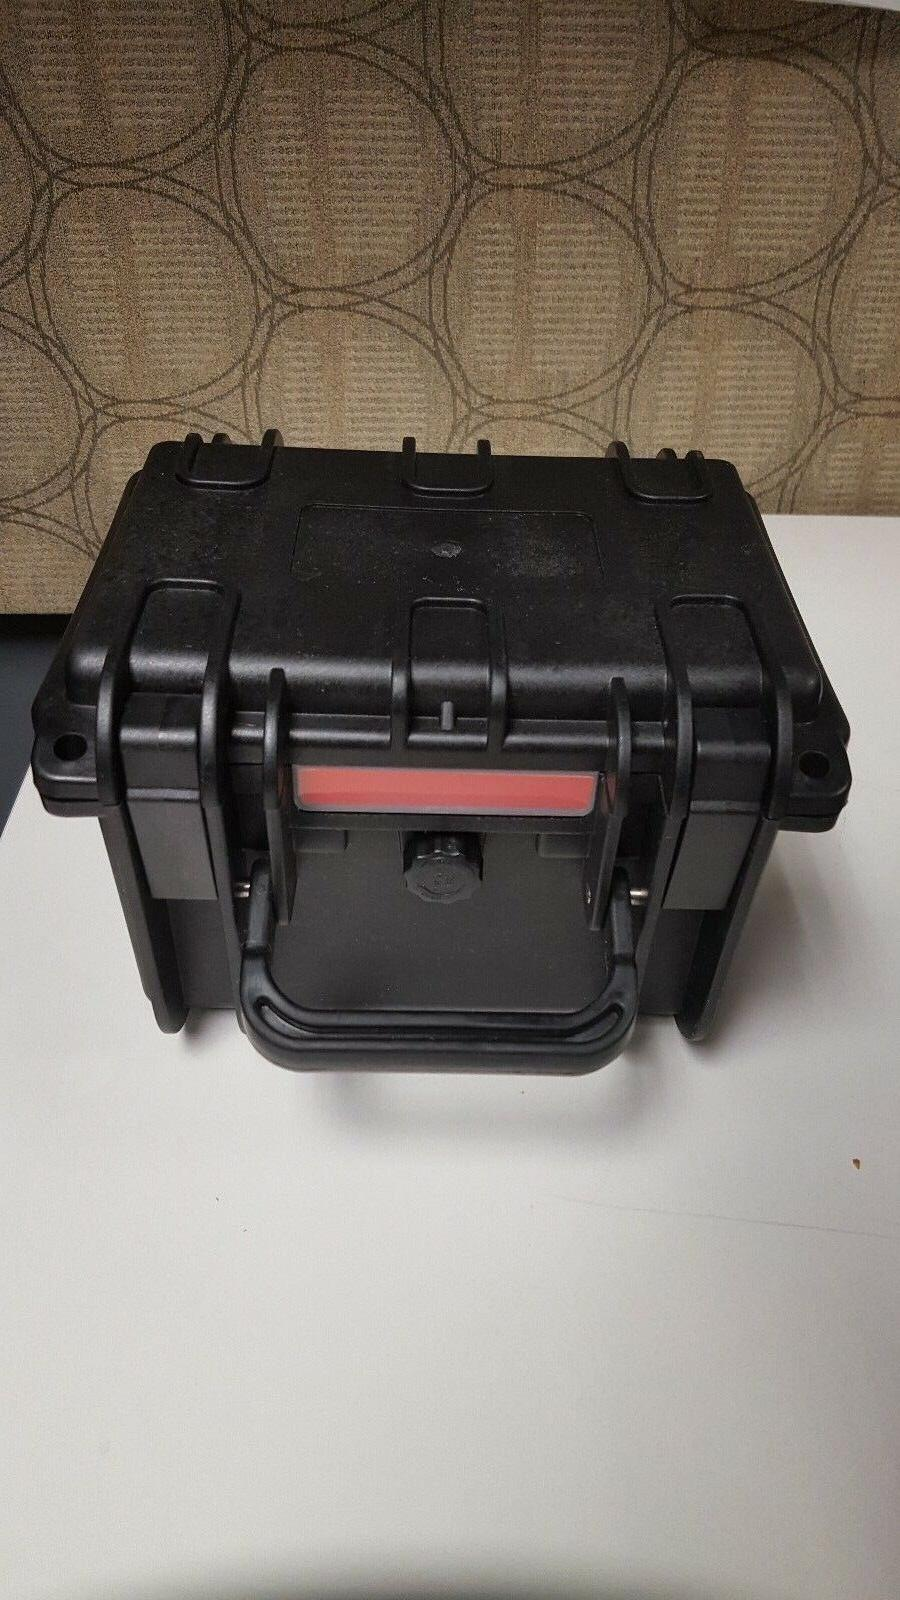 OEM Pelican style protective carrying case with removable fo